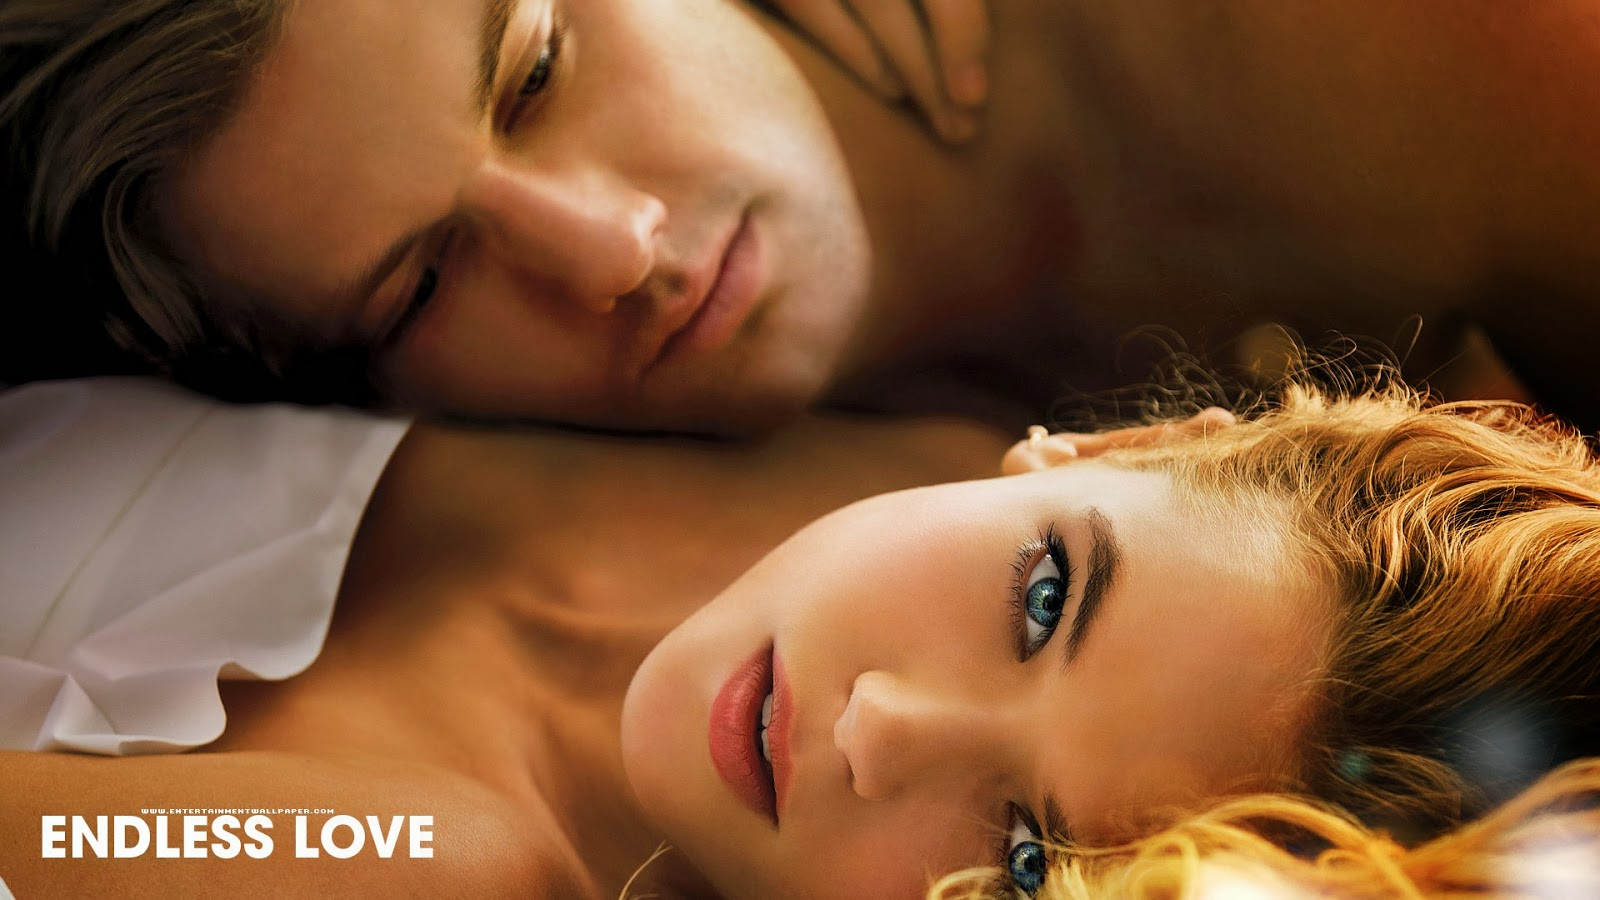 Warner Bros. Records Releases Original Motion Picture soundtrack to Universal Pictures' Endless Love